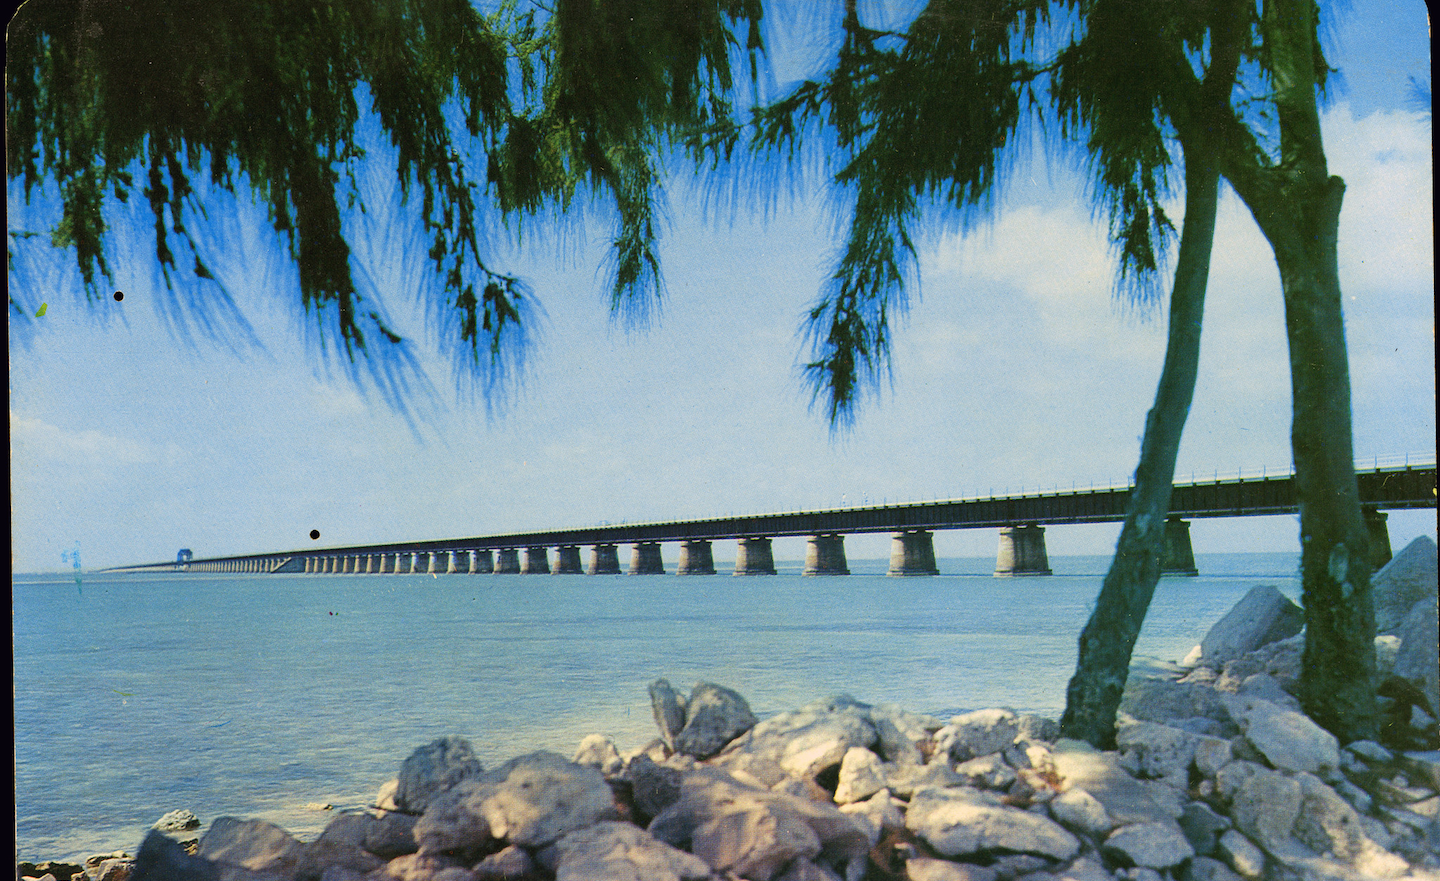 The Seven Mile Bridge